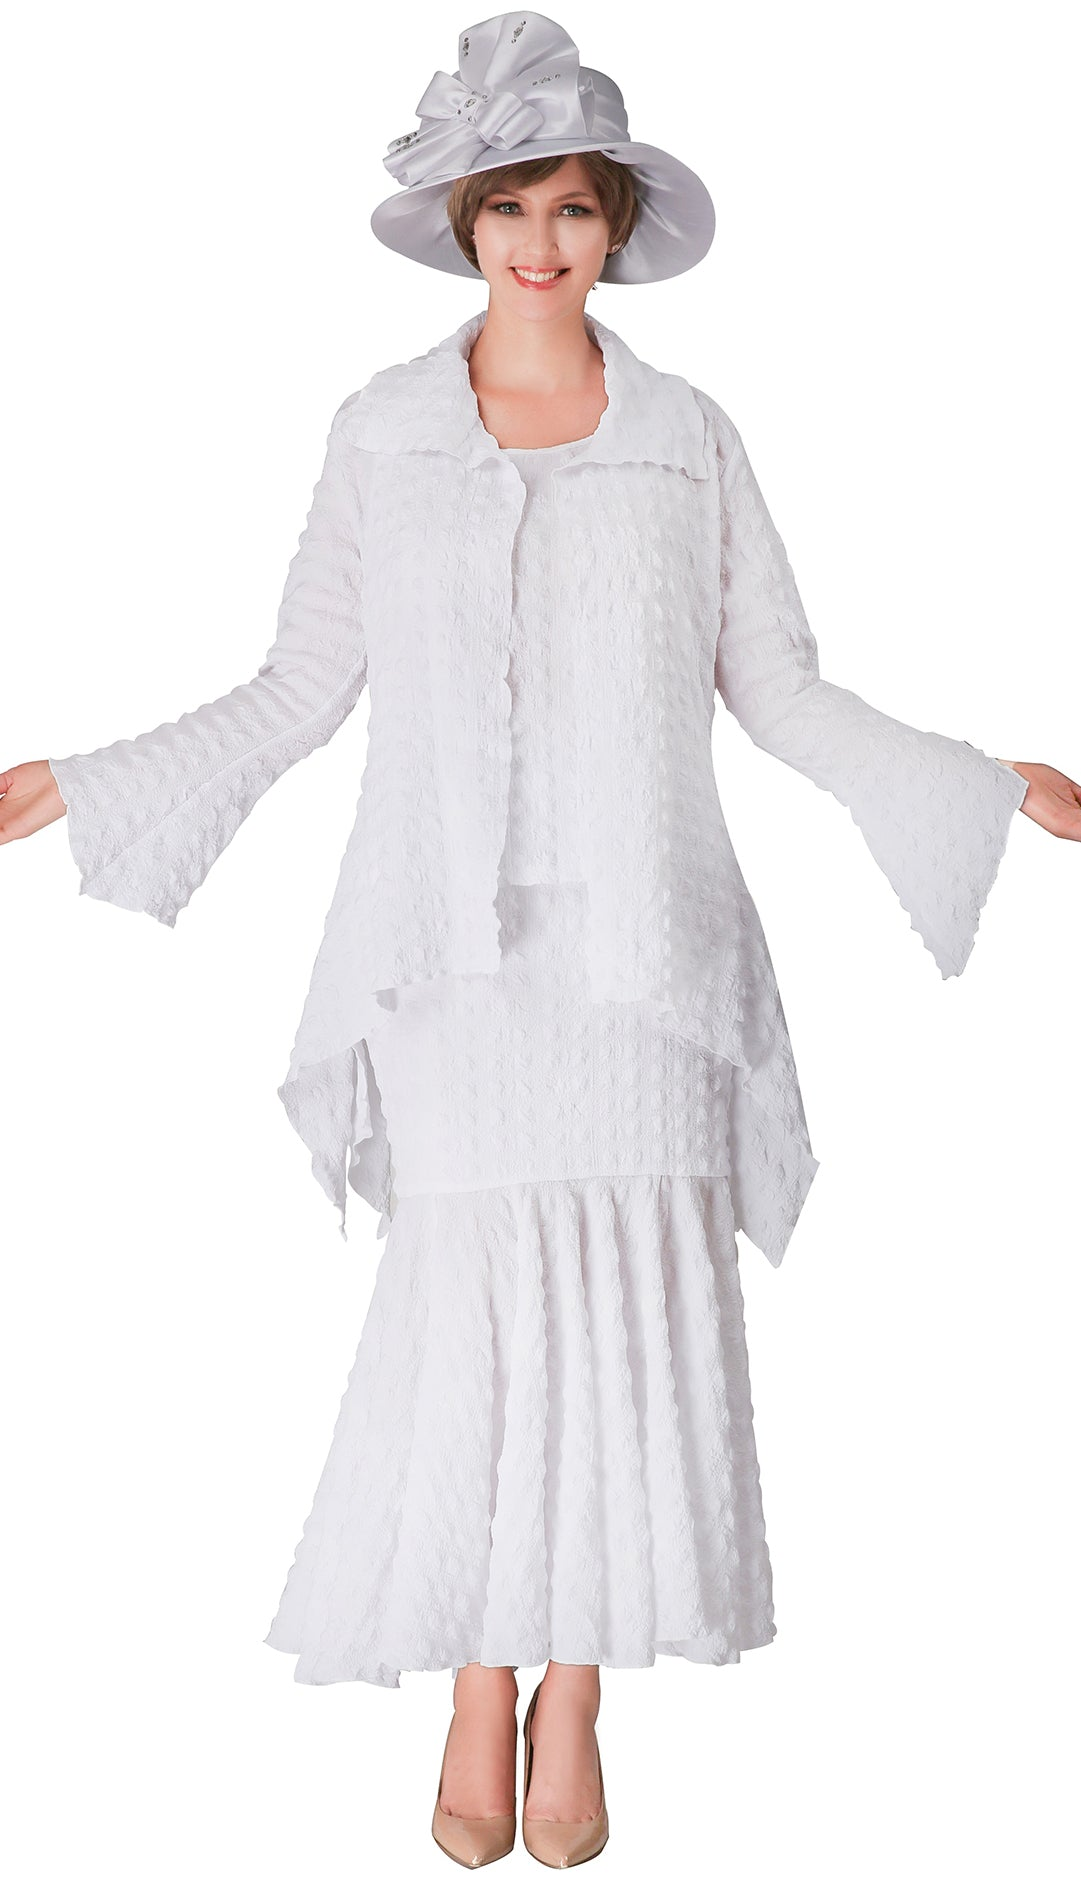 Giovanna Suit 0940-White - Church Suits For Less